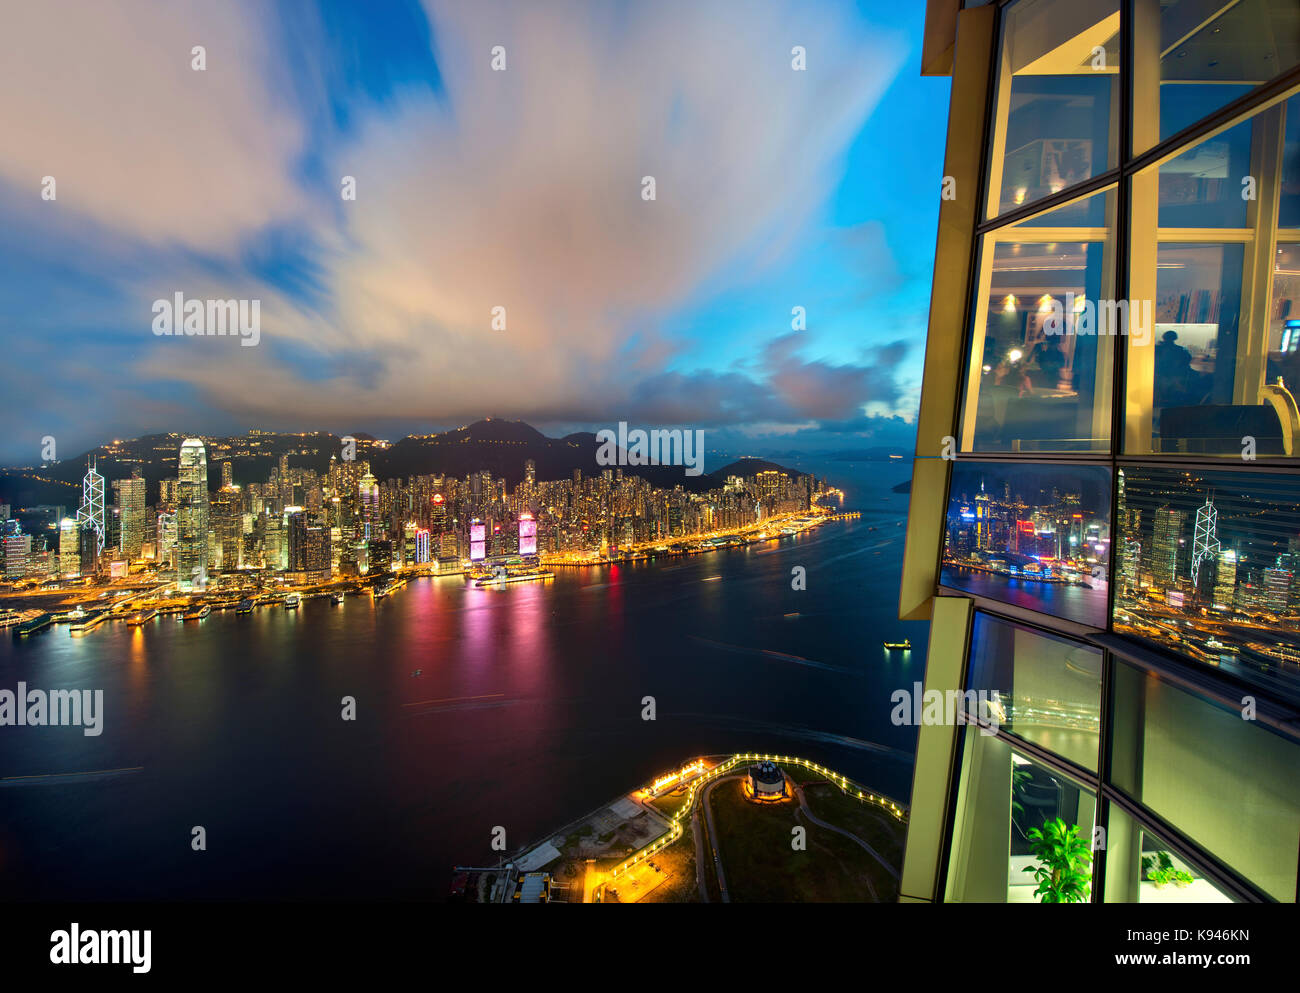 Aerial view of Hong Kong cityscape with illuminated skyscrapers at dusk. - Stock Image